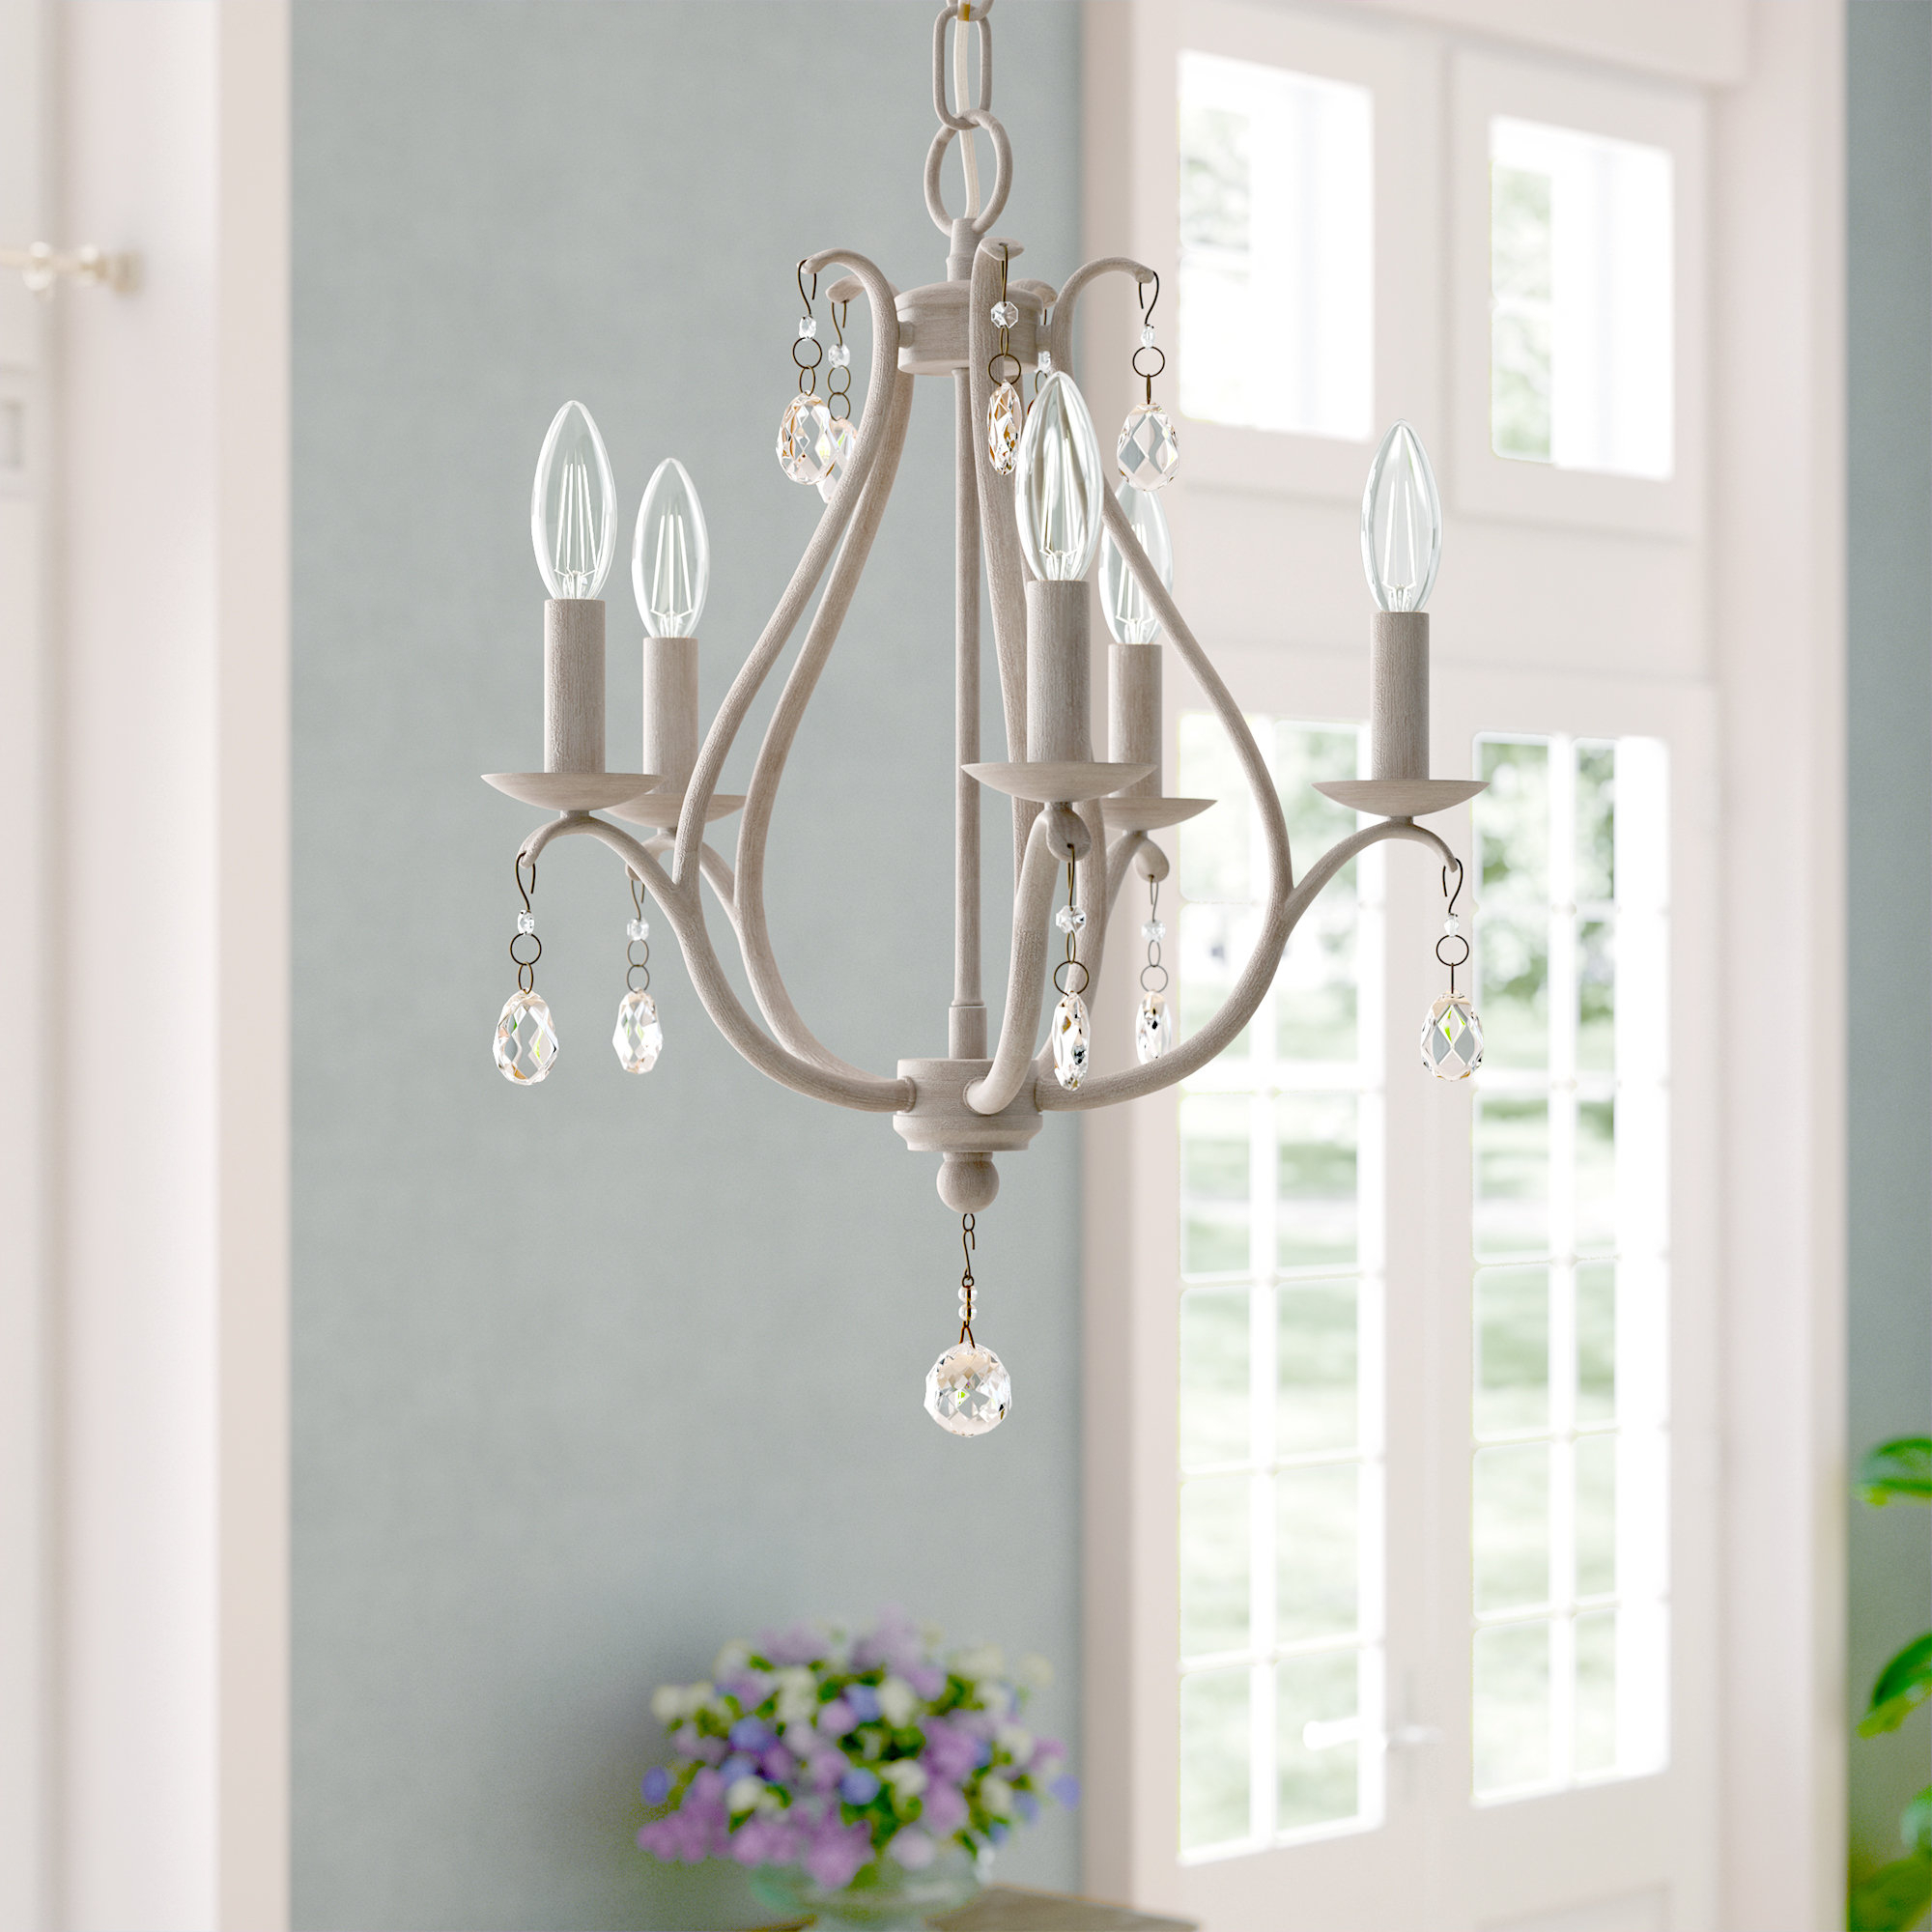 Most Recently Released Palumbo 5 Light Candle Style Chandelier Regarding Florentina 5 Light Candle Style Chandeliers (View 14 of 20)